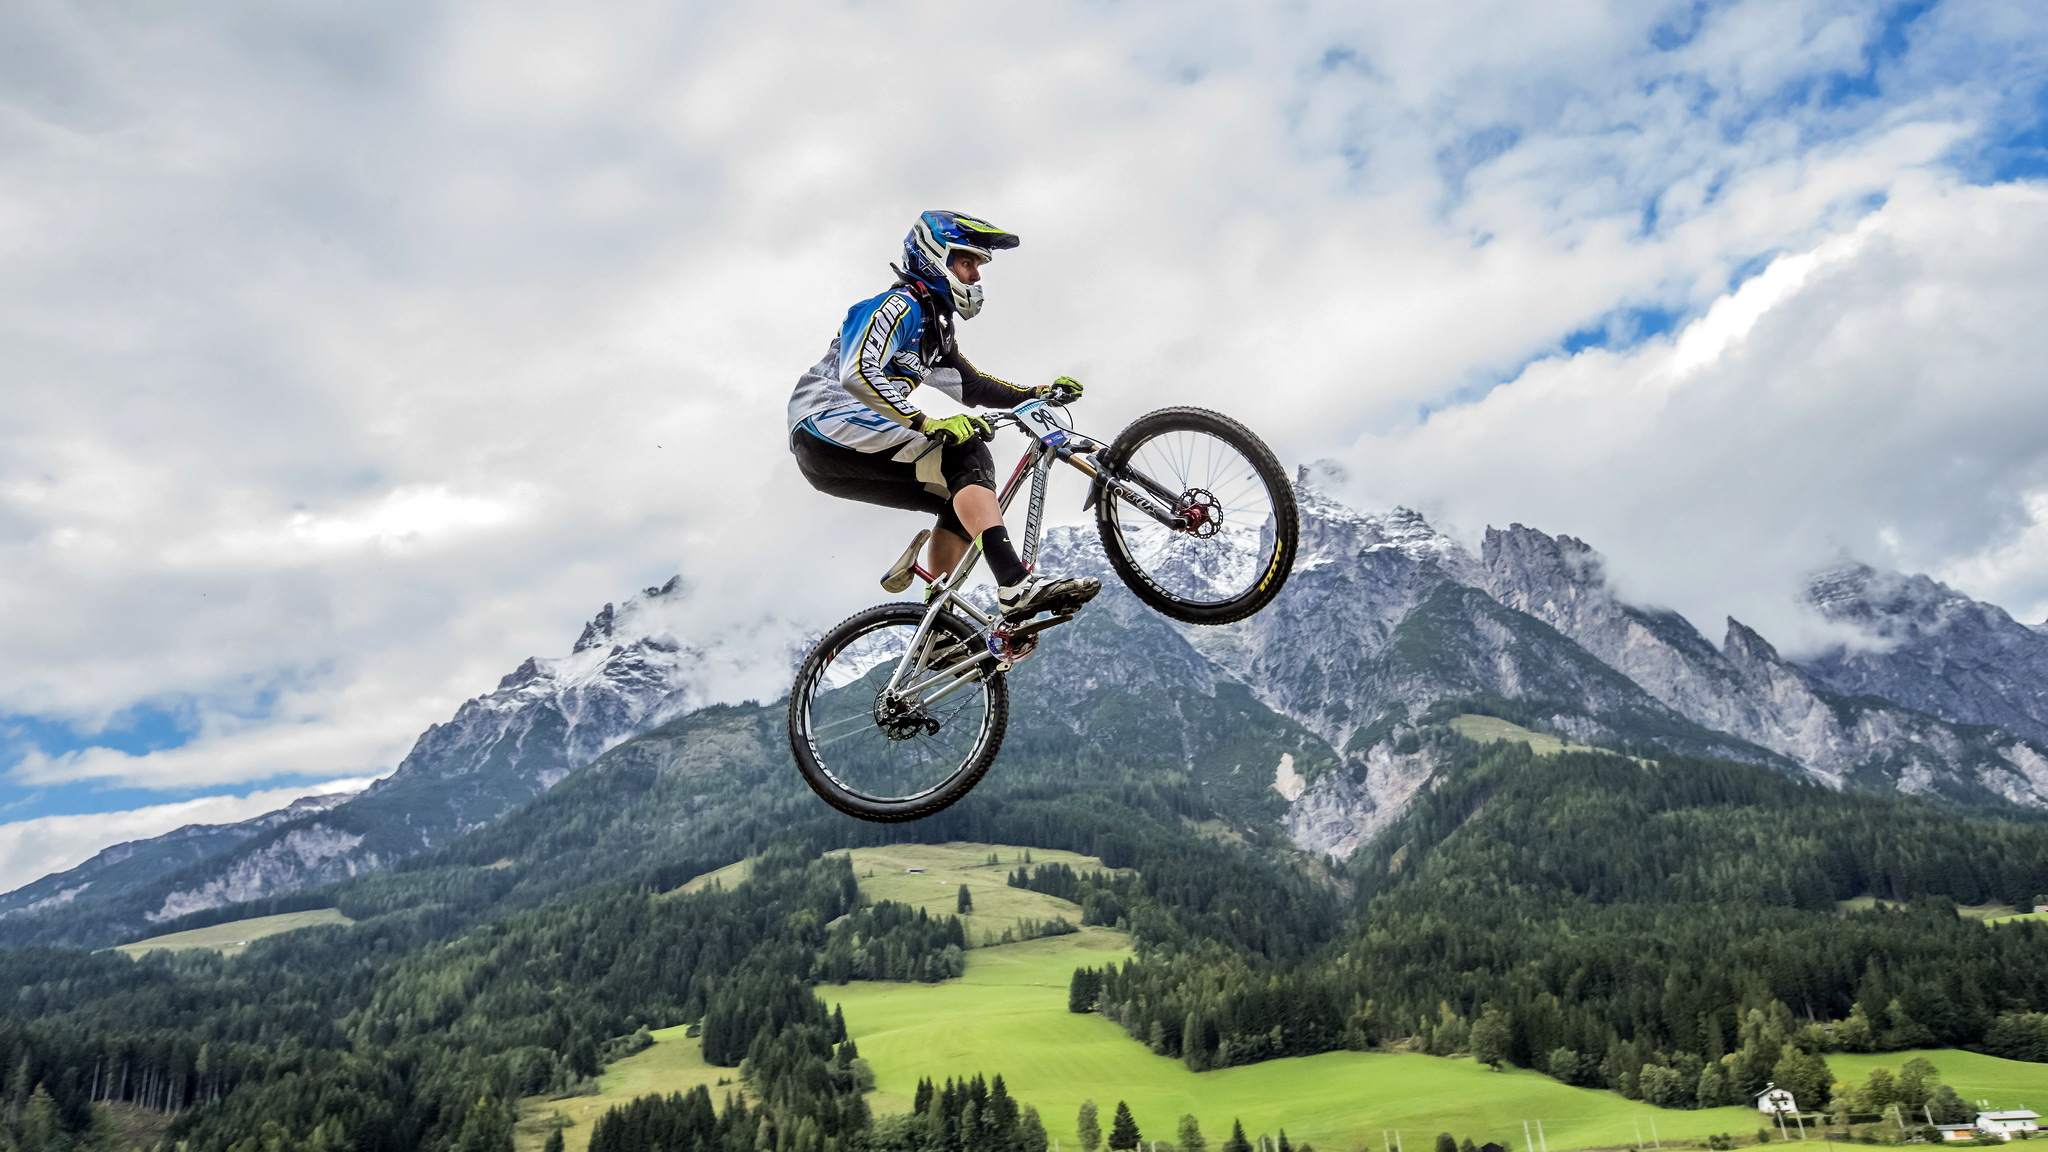 mountains bicycle jump sport nature wallpaper 2048x1152 175065 wallpaperup. Black Bedroom Furniture Sets. Home Design Ideas